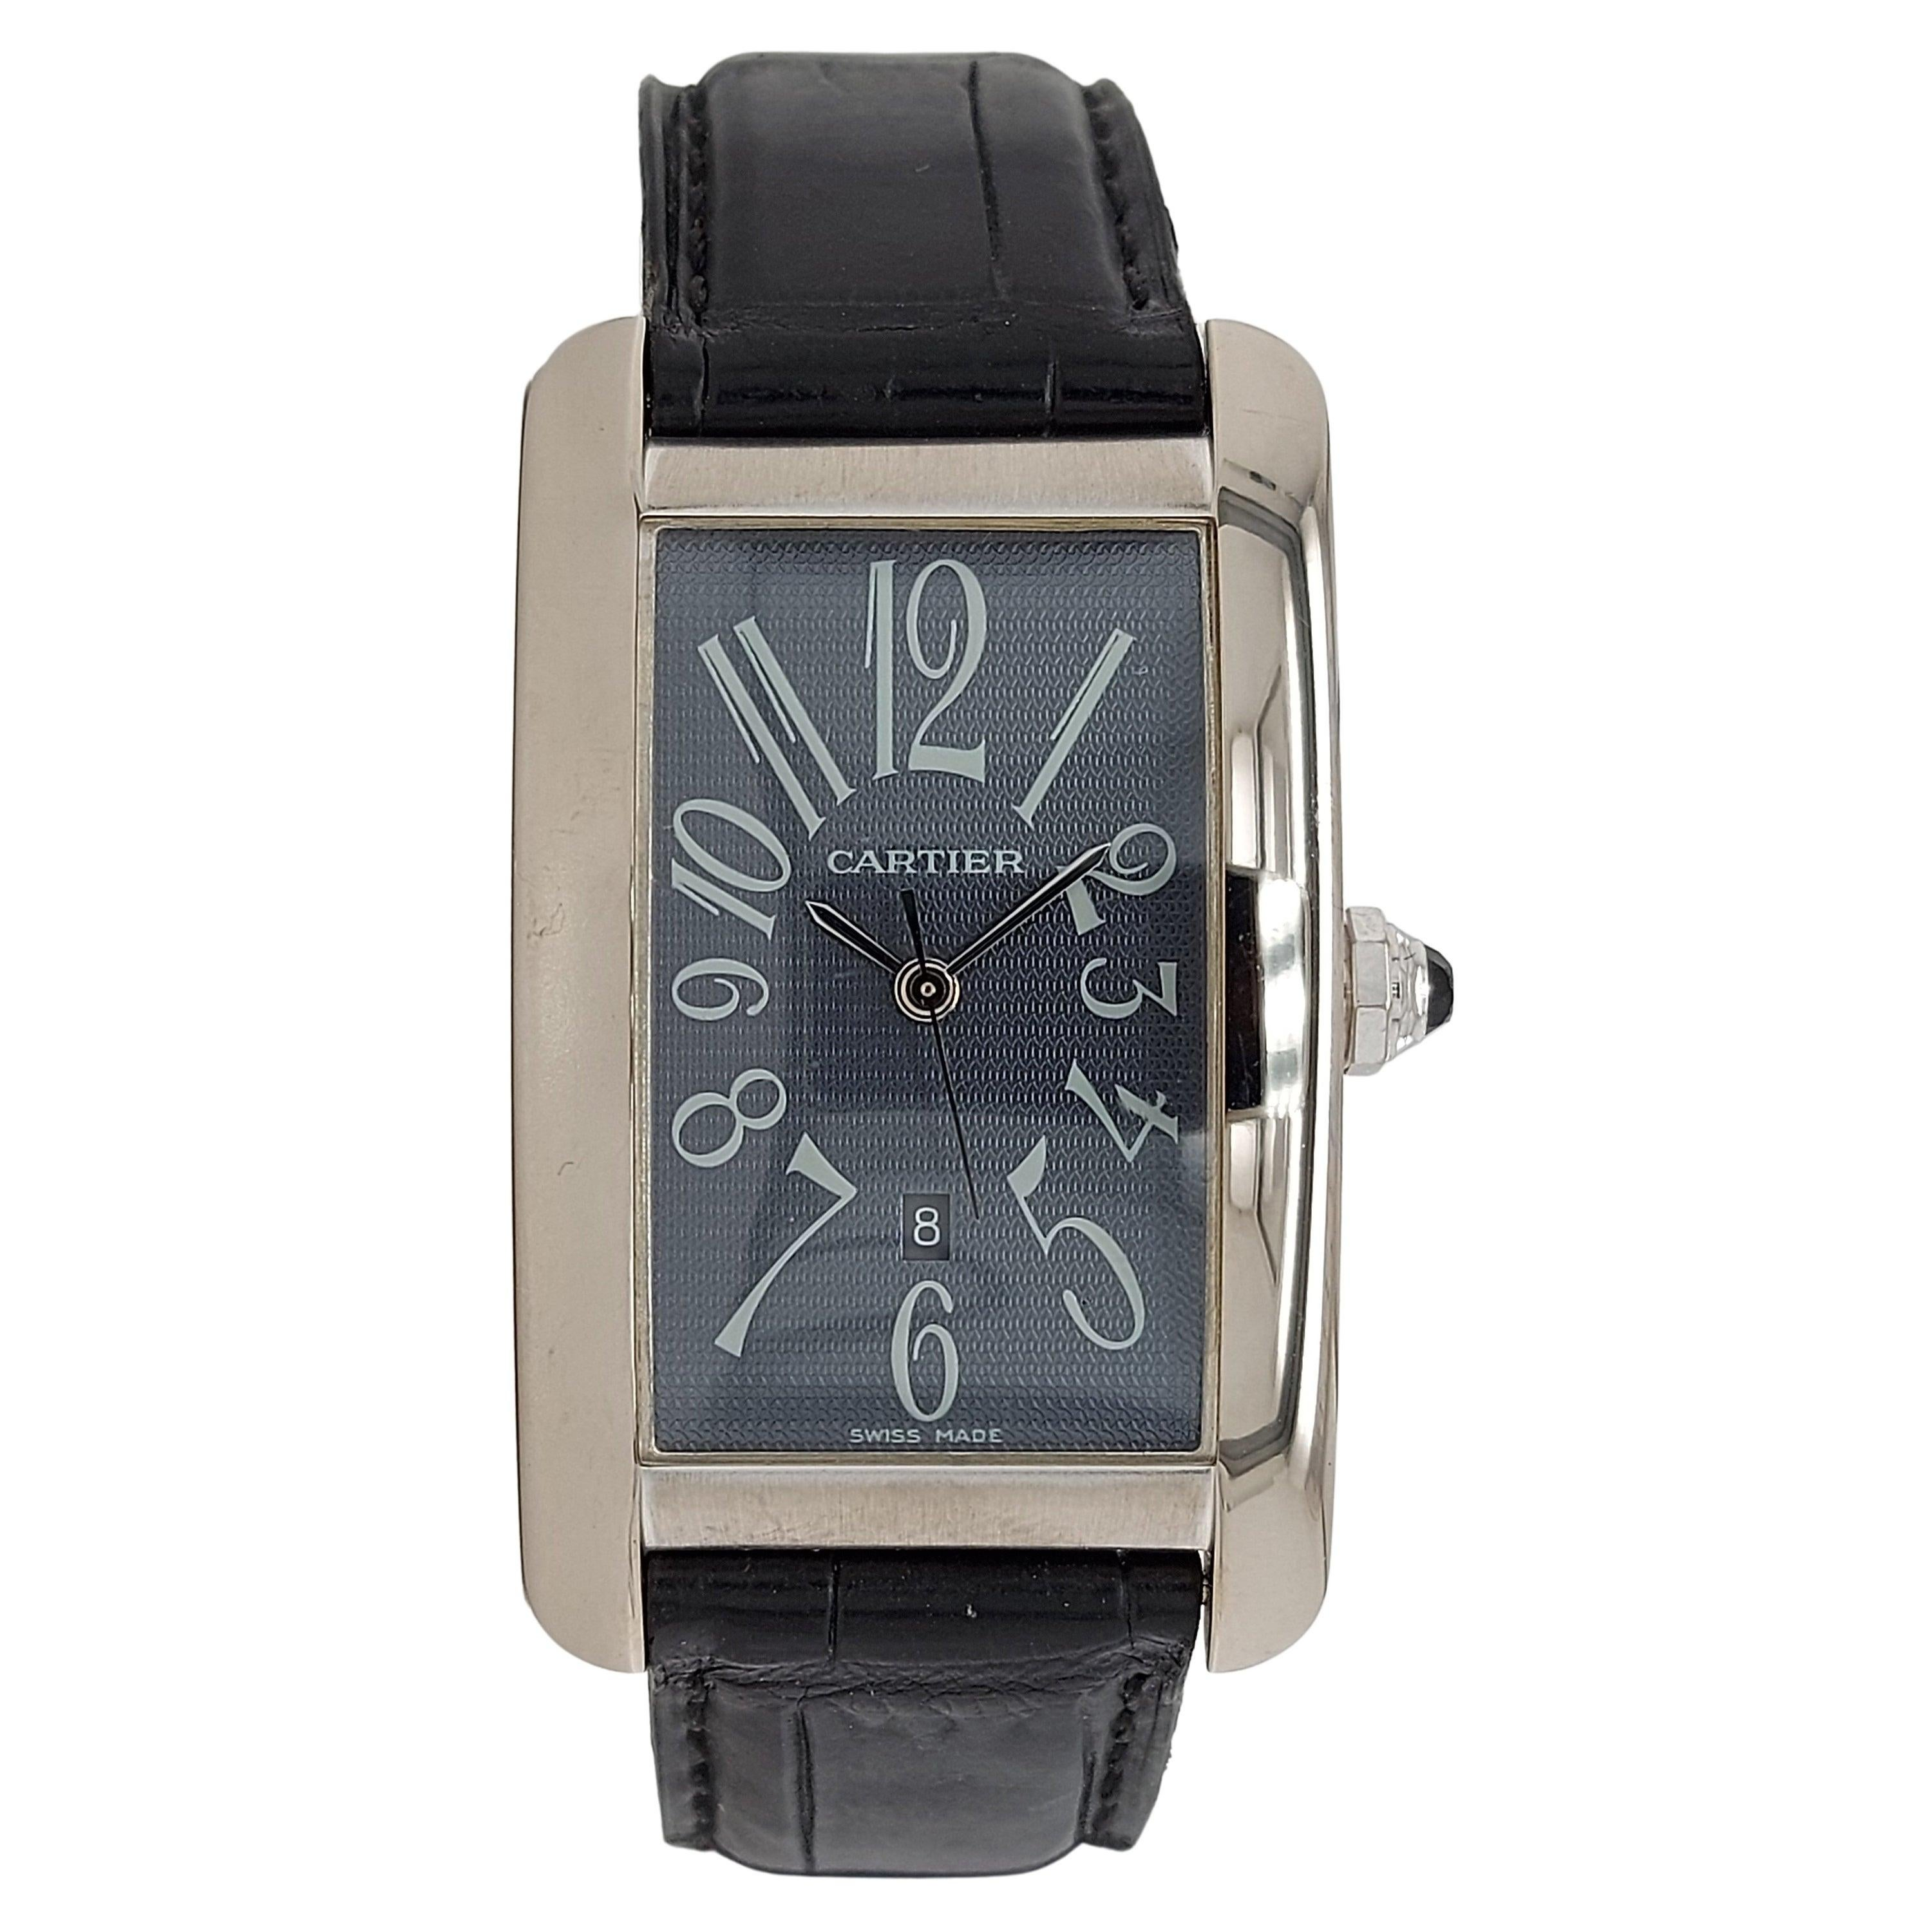 Cartier Tank Mechanical Automatic 1741, 18kt White Gold, Grey Dial